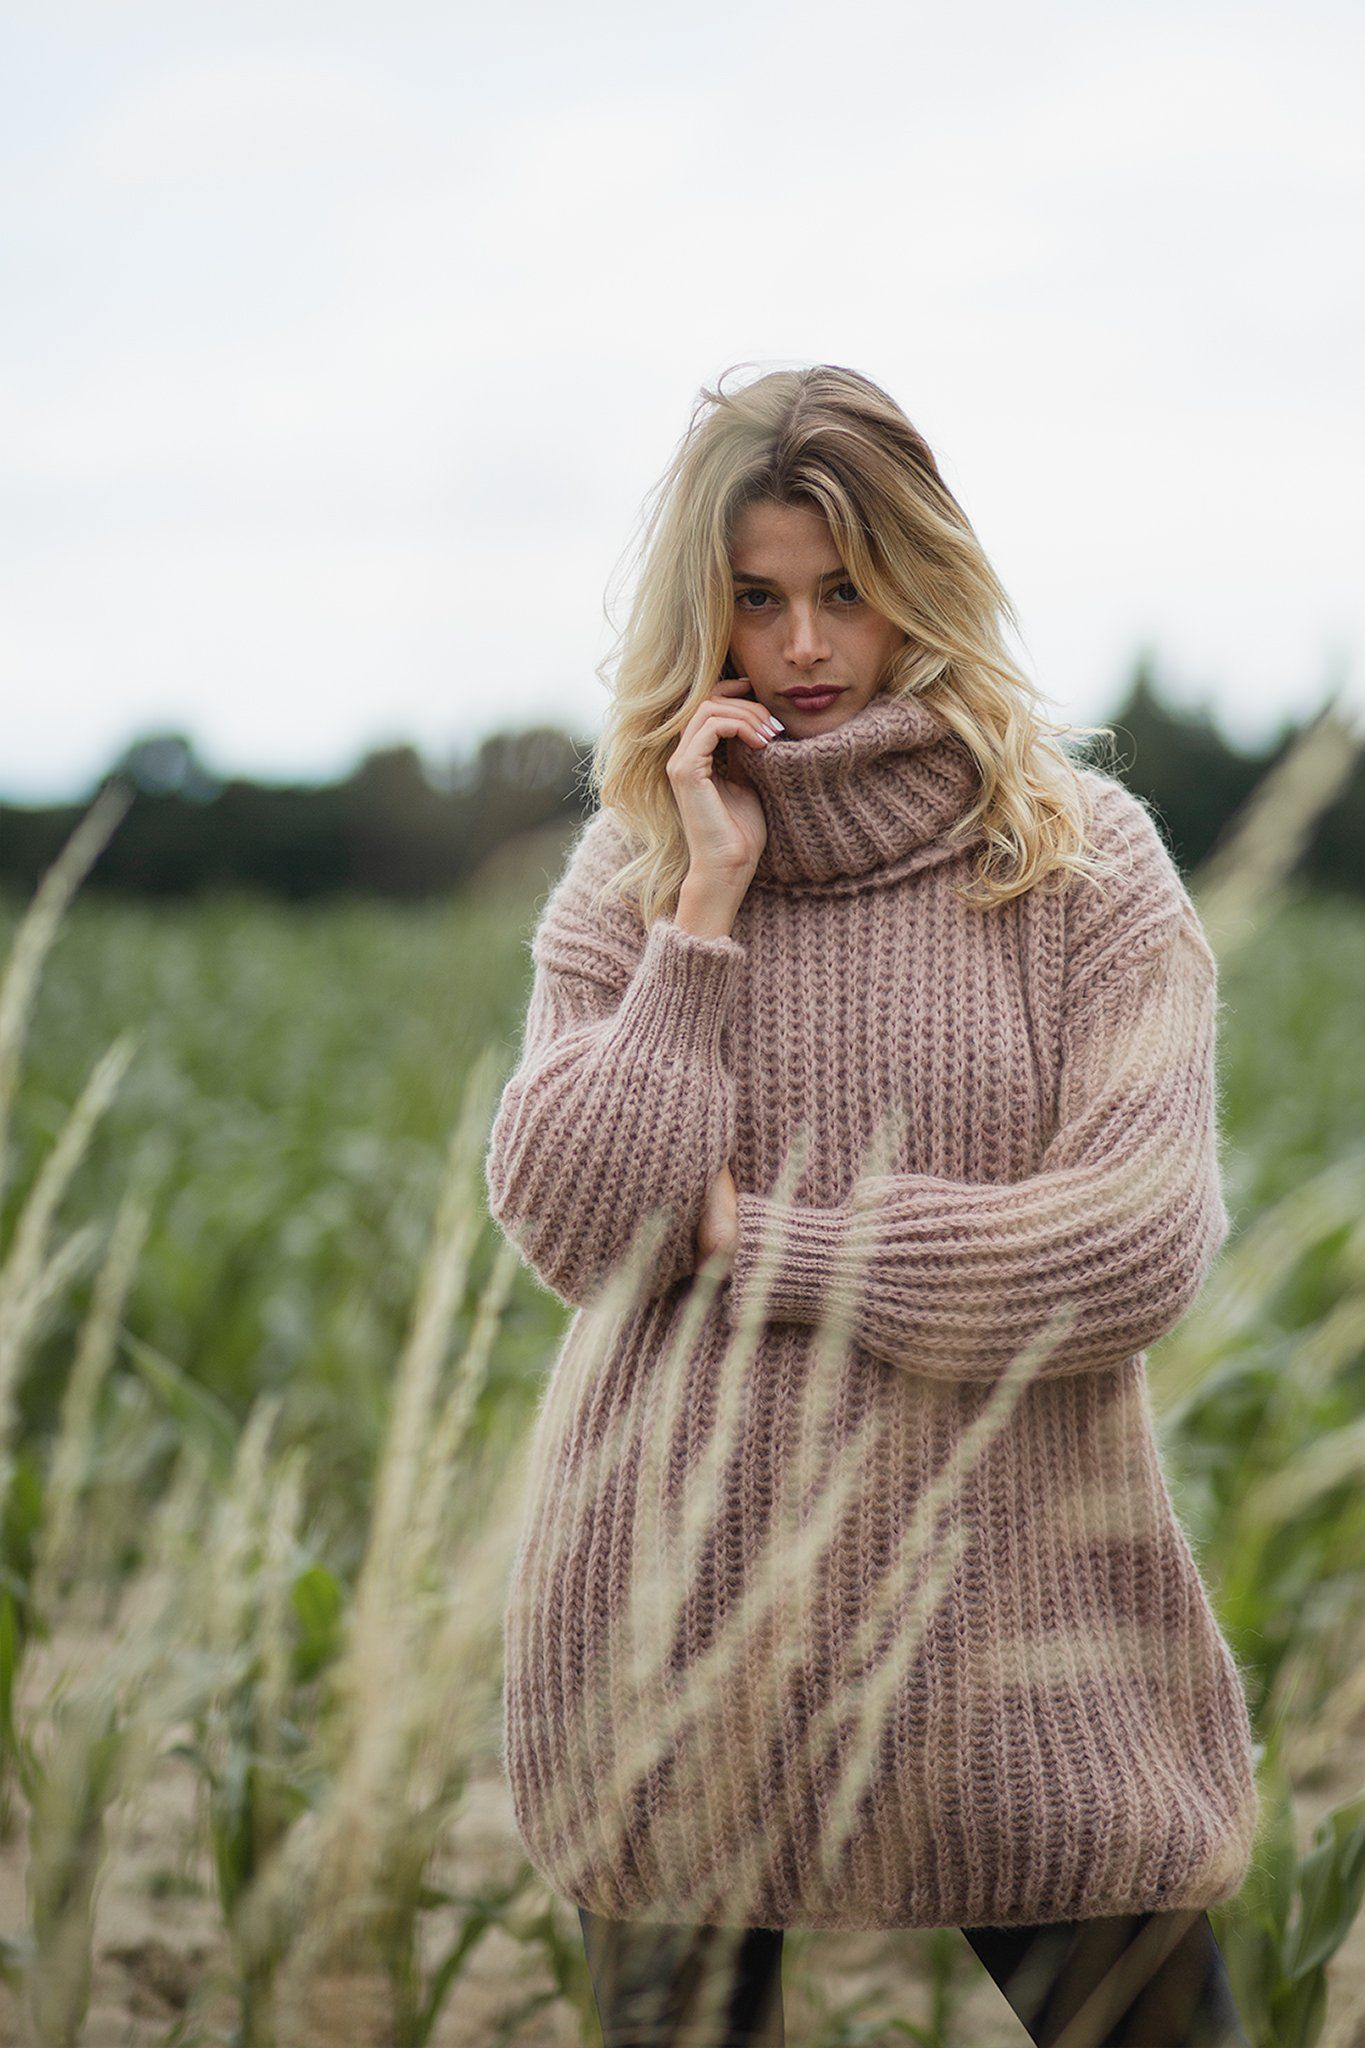 Annette Sweater - Beige, [product_type]- Poppy Field the label